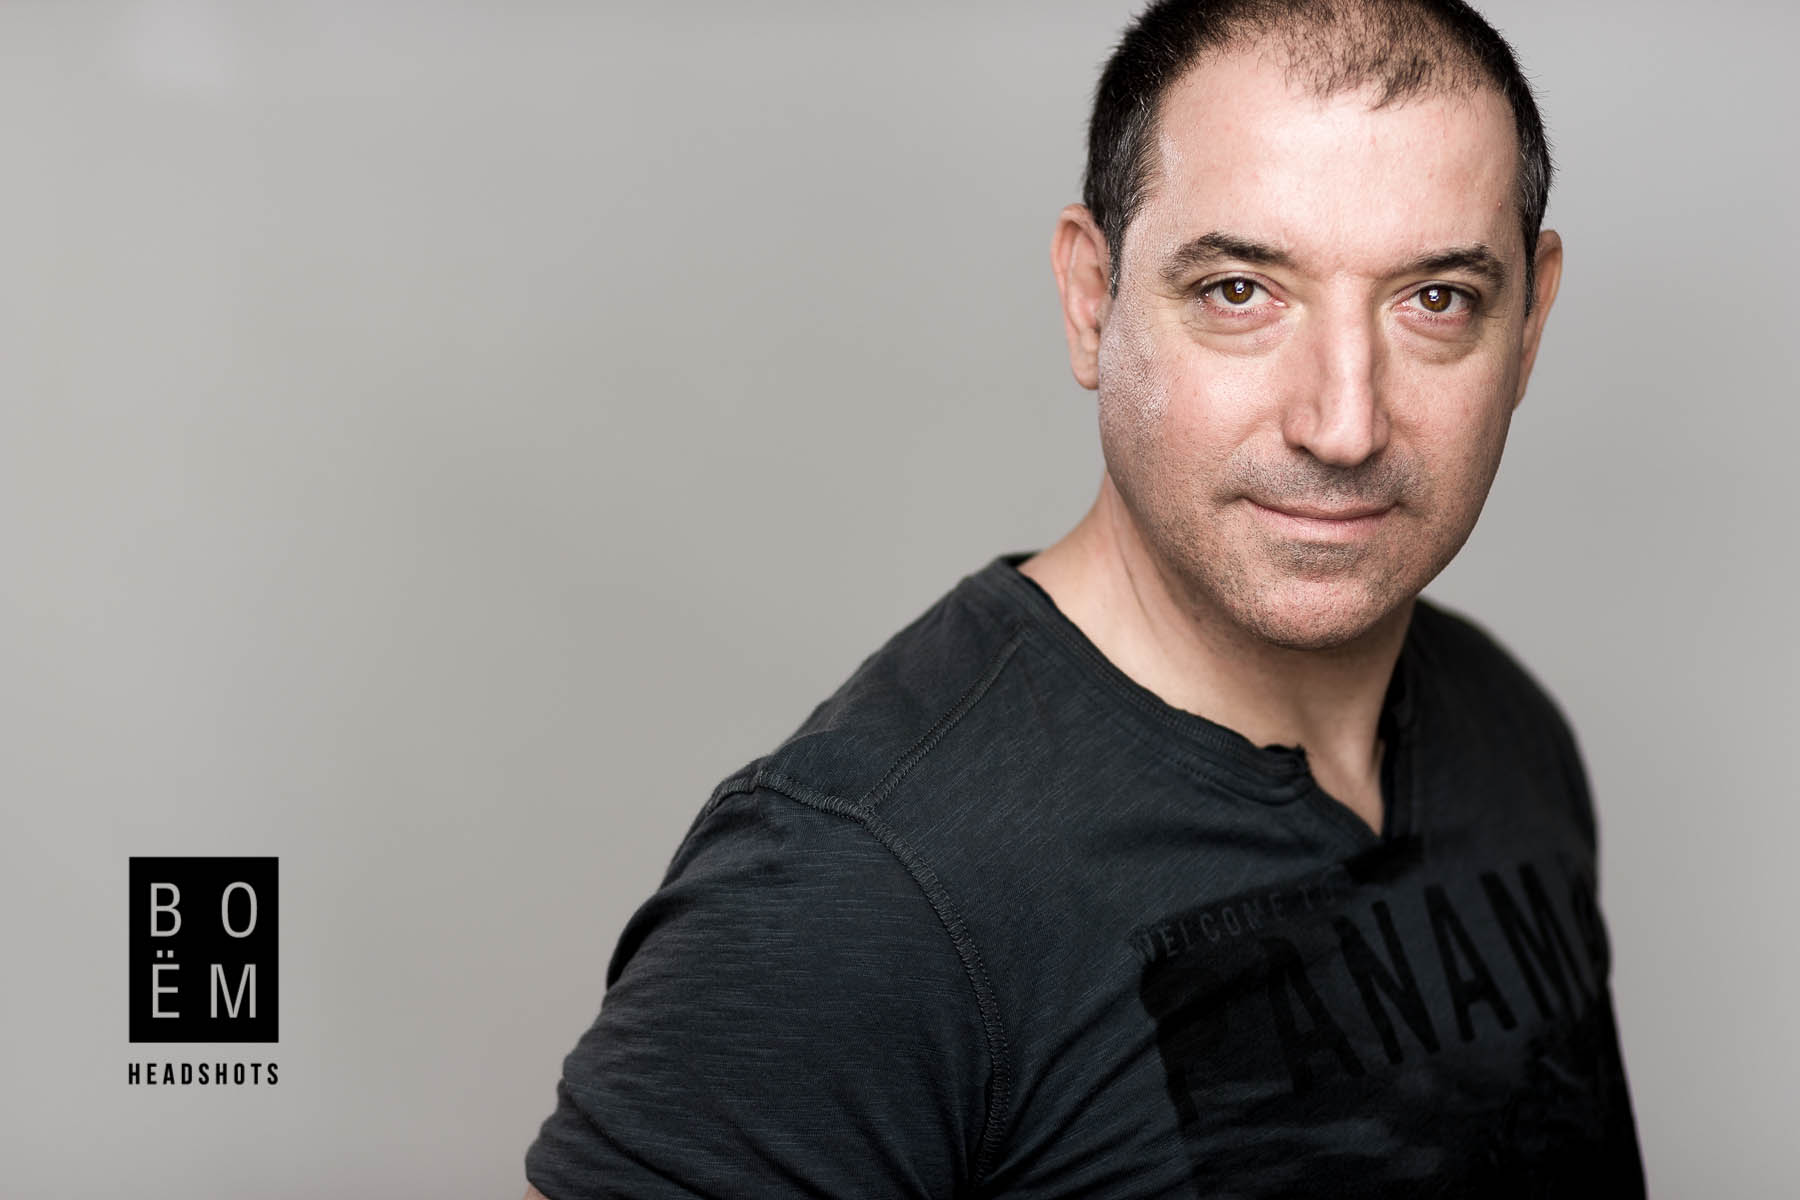 A sneak peek at my session with Marcello today, we had a blast shooting his new acting head shots.